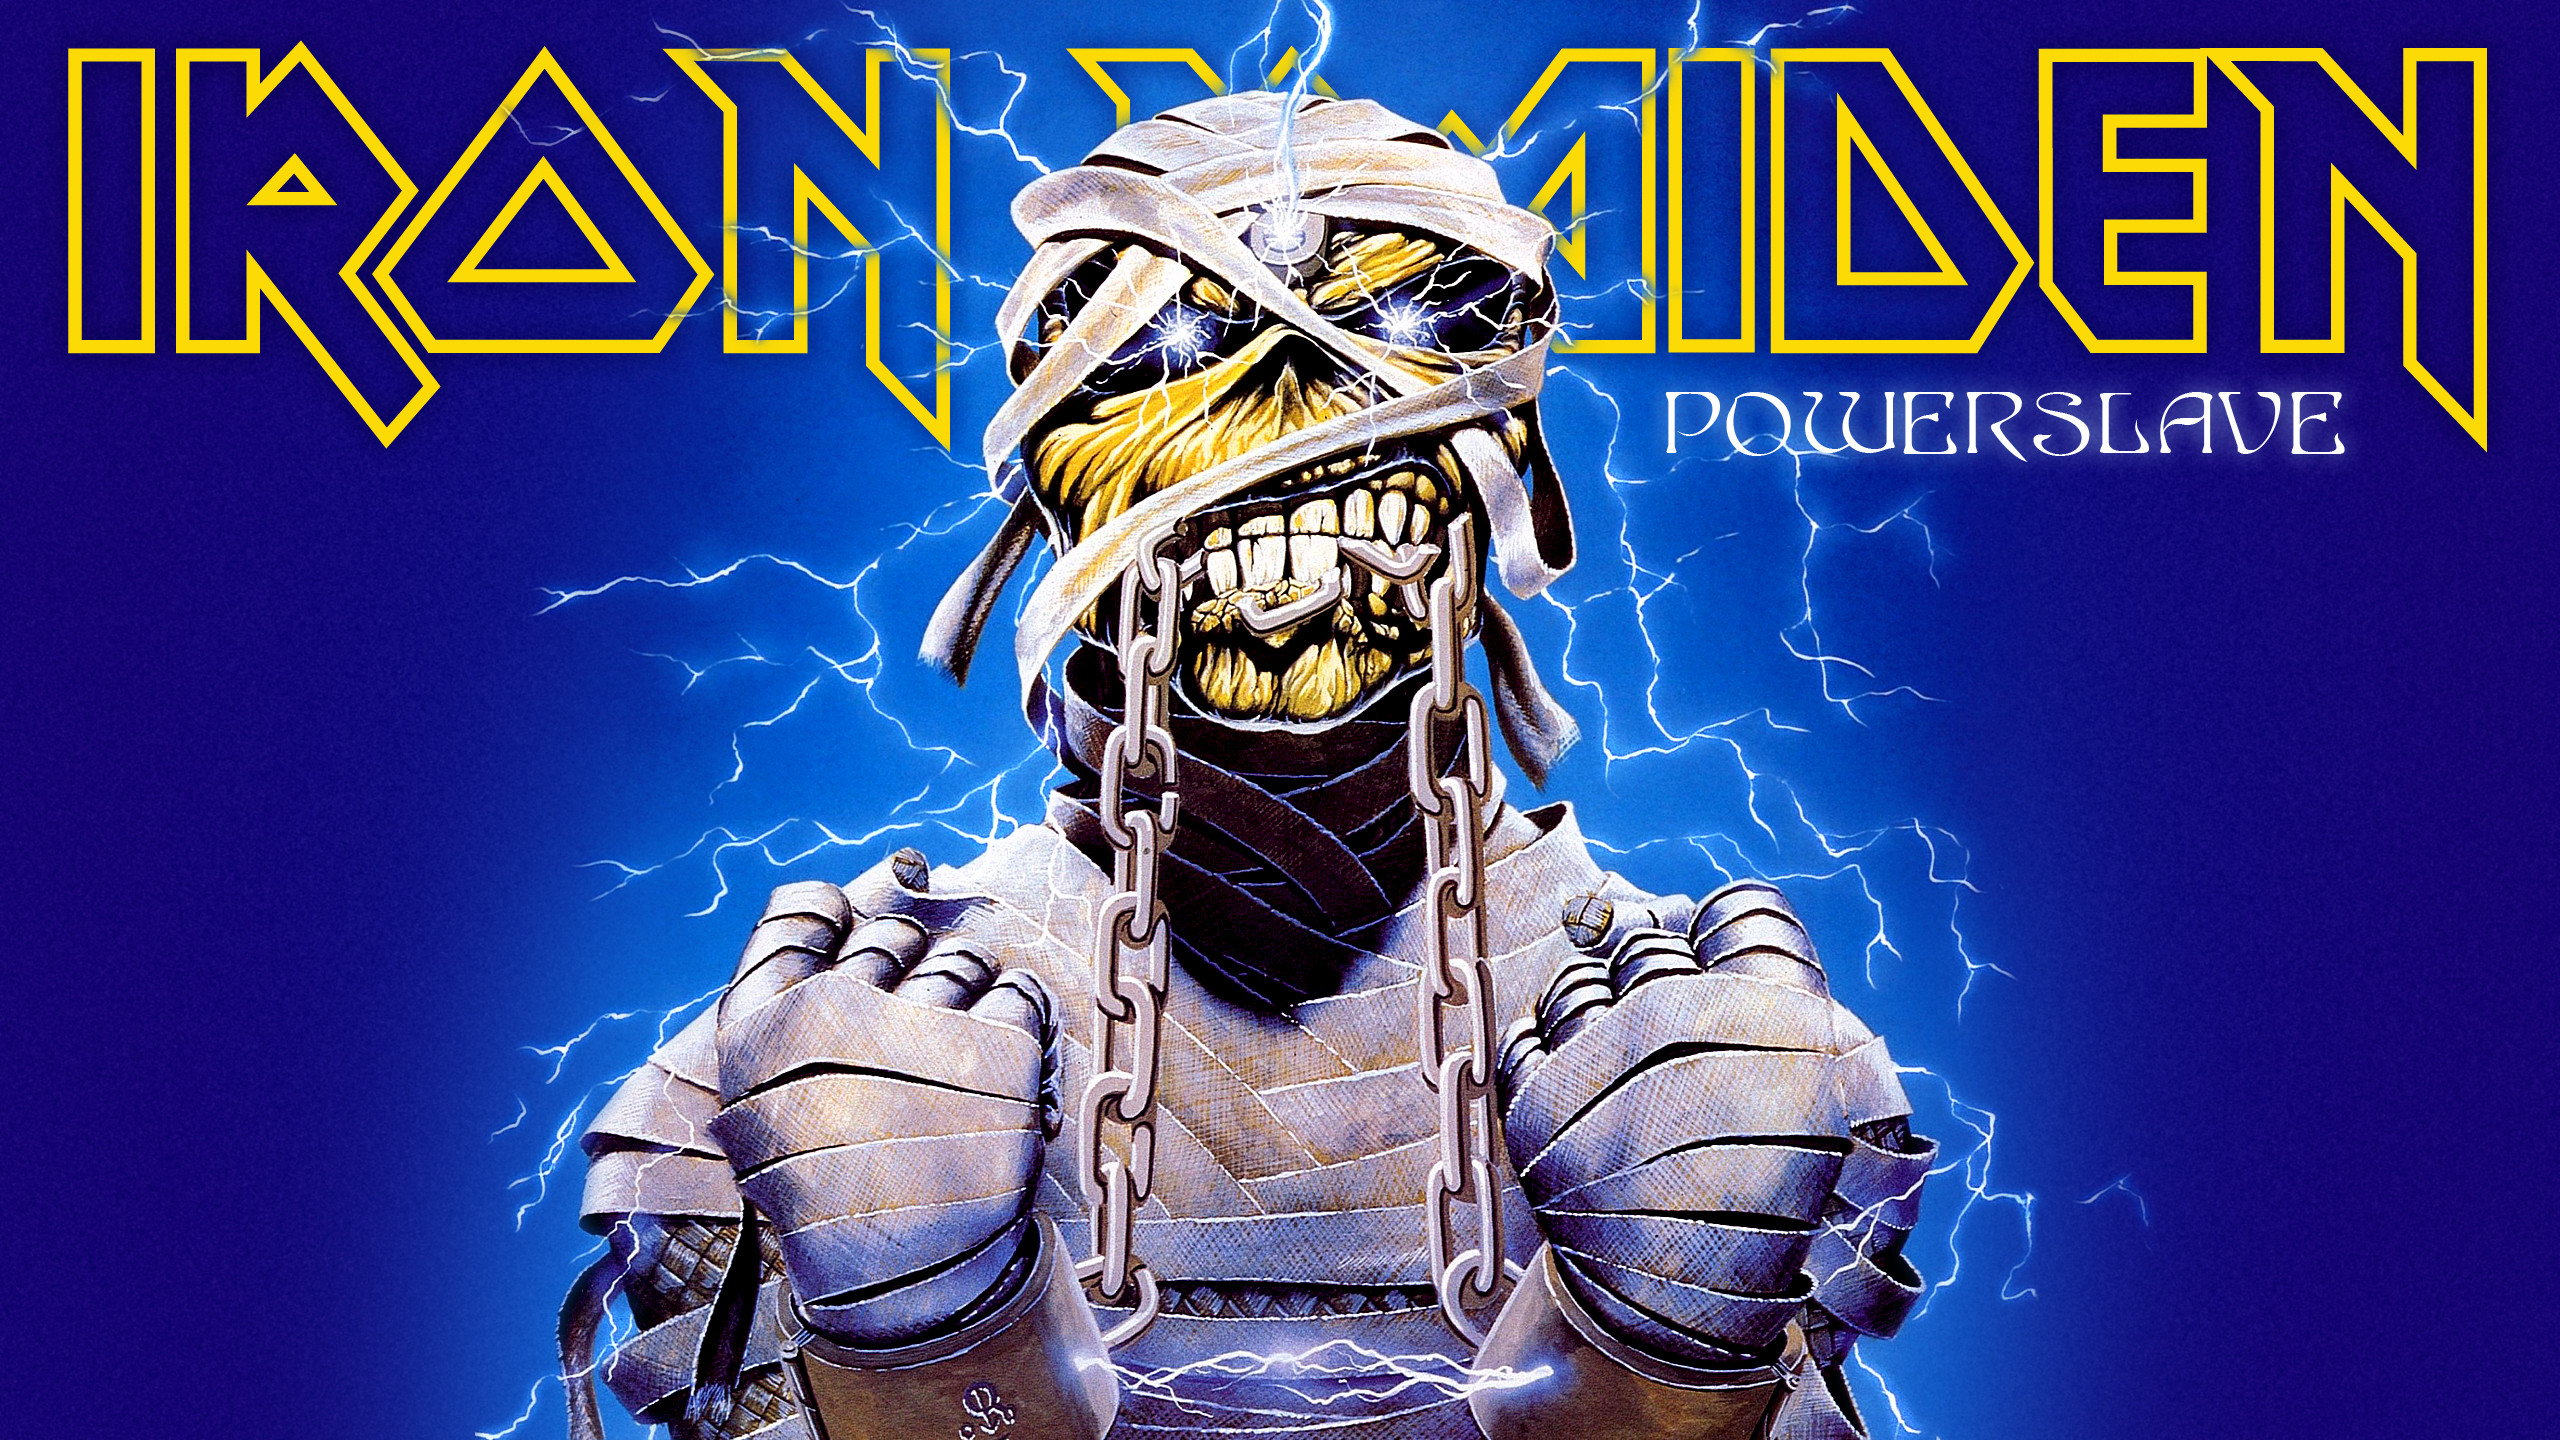 Top 20 Iron Maiden Wallpapers